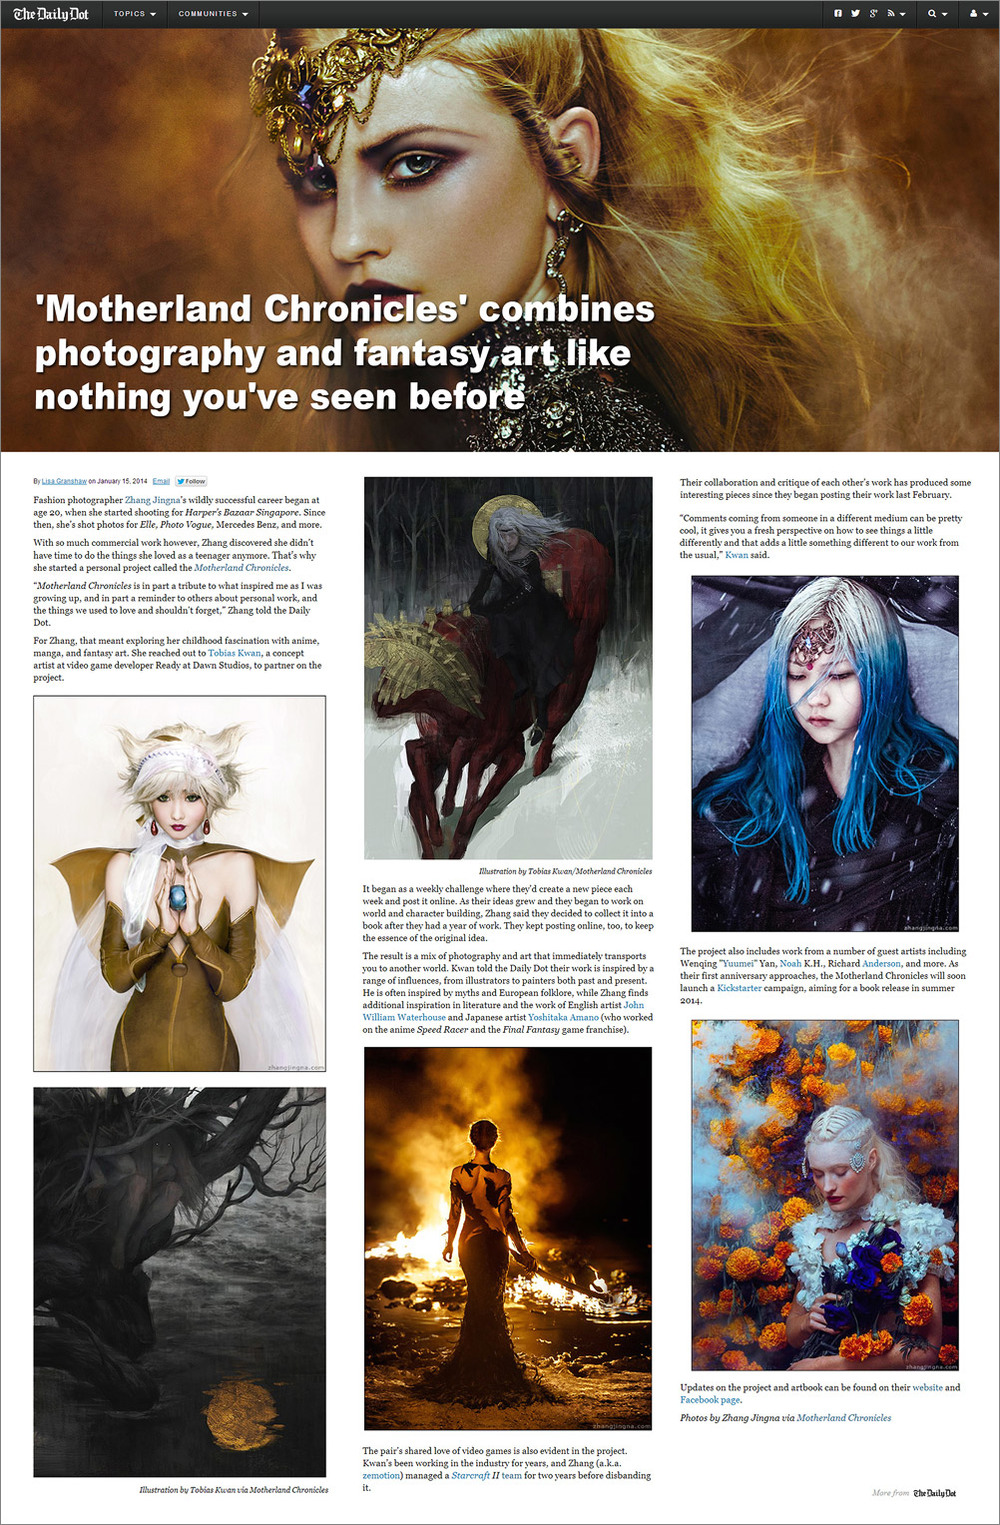 """'Motherland Chronicles' combines photography and fantasy art like nothing you've seen before"",  The Daily Dot , 14 Jan 2014"